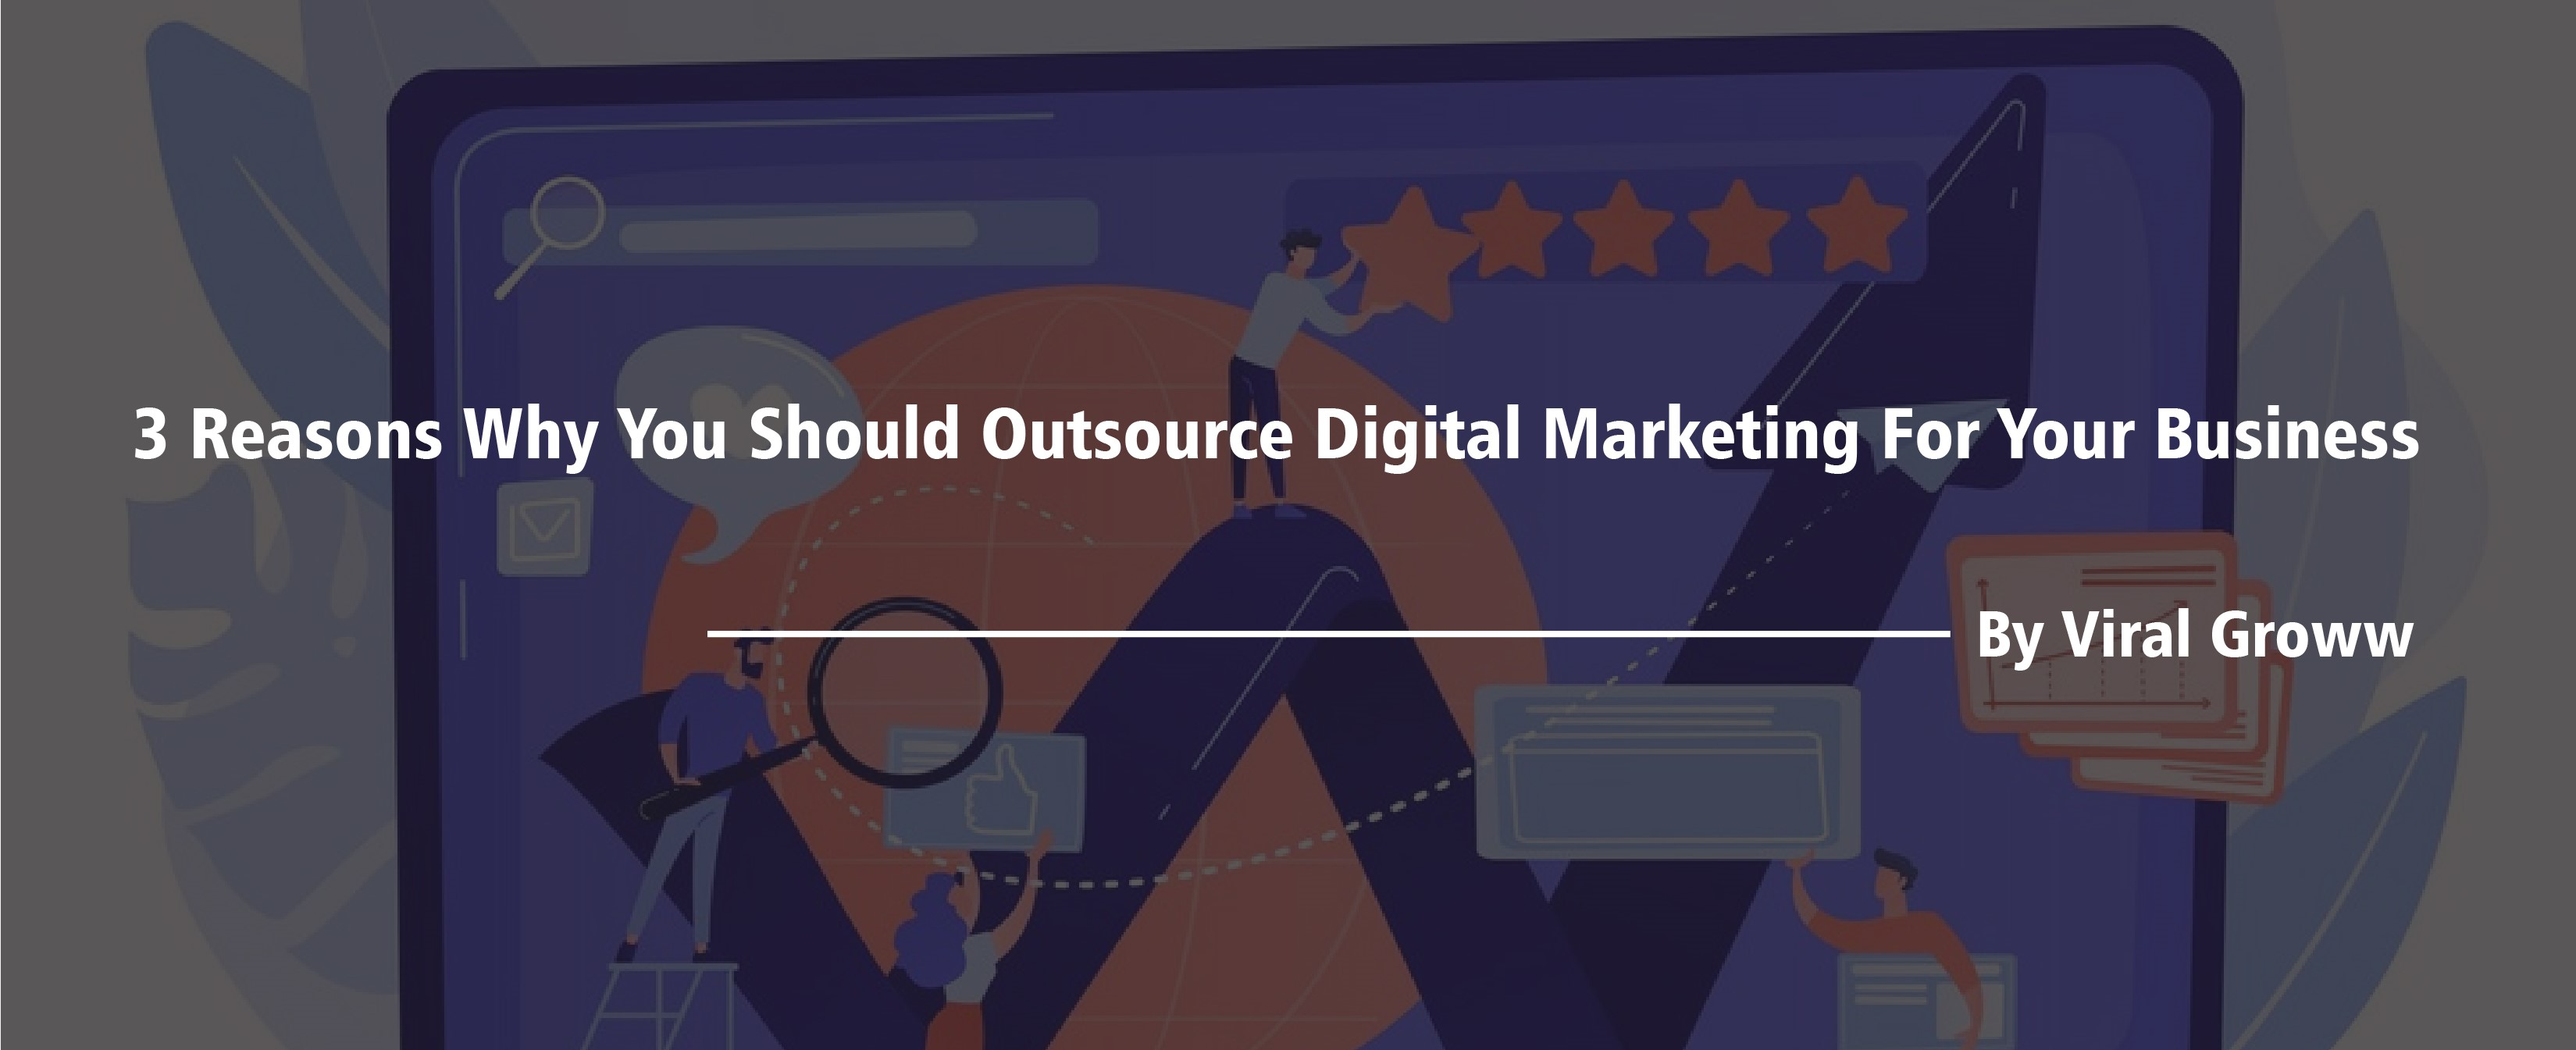 3 Reasons why you should outsource Digital Marketing for your business